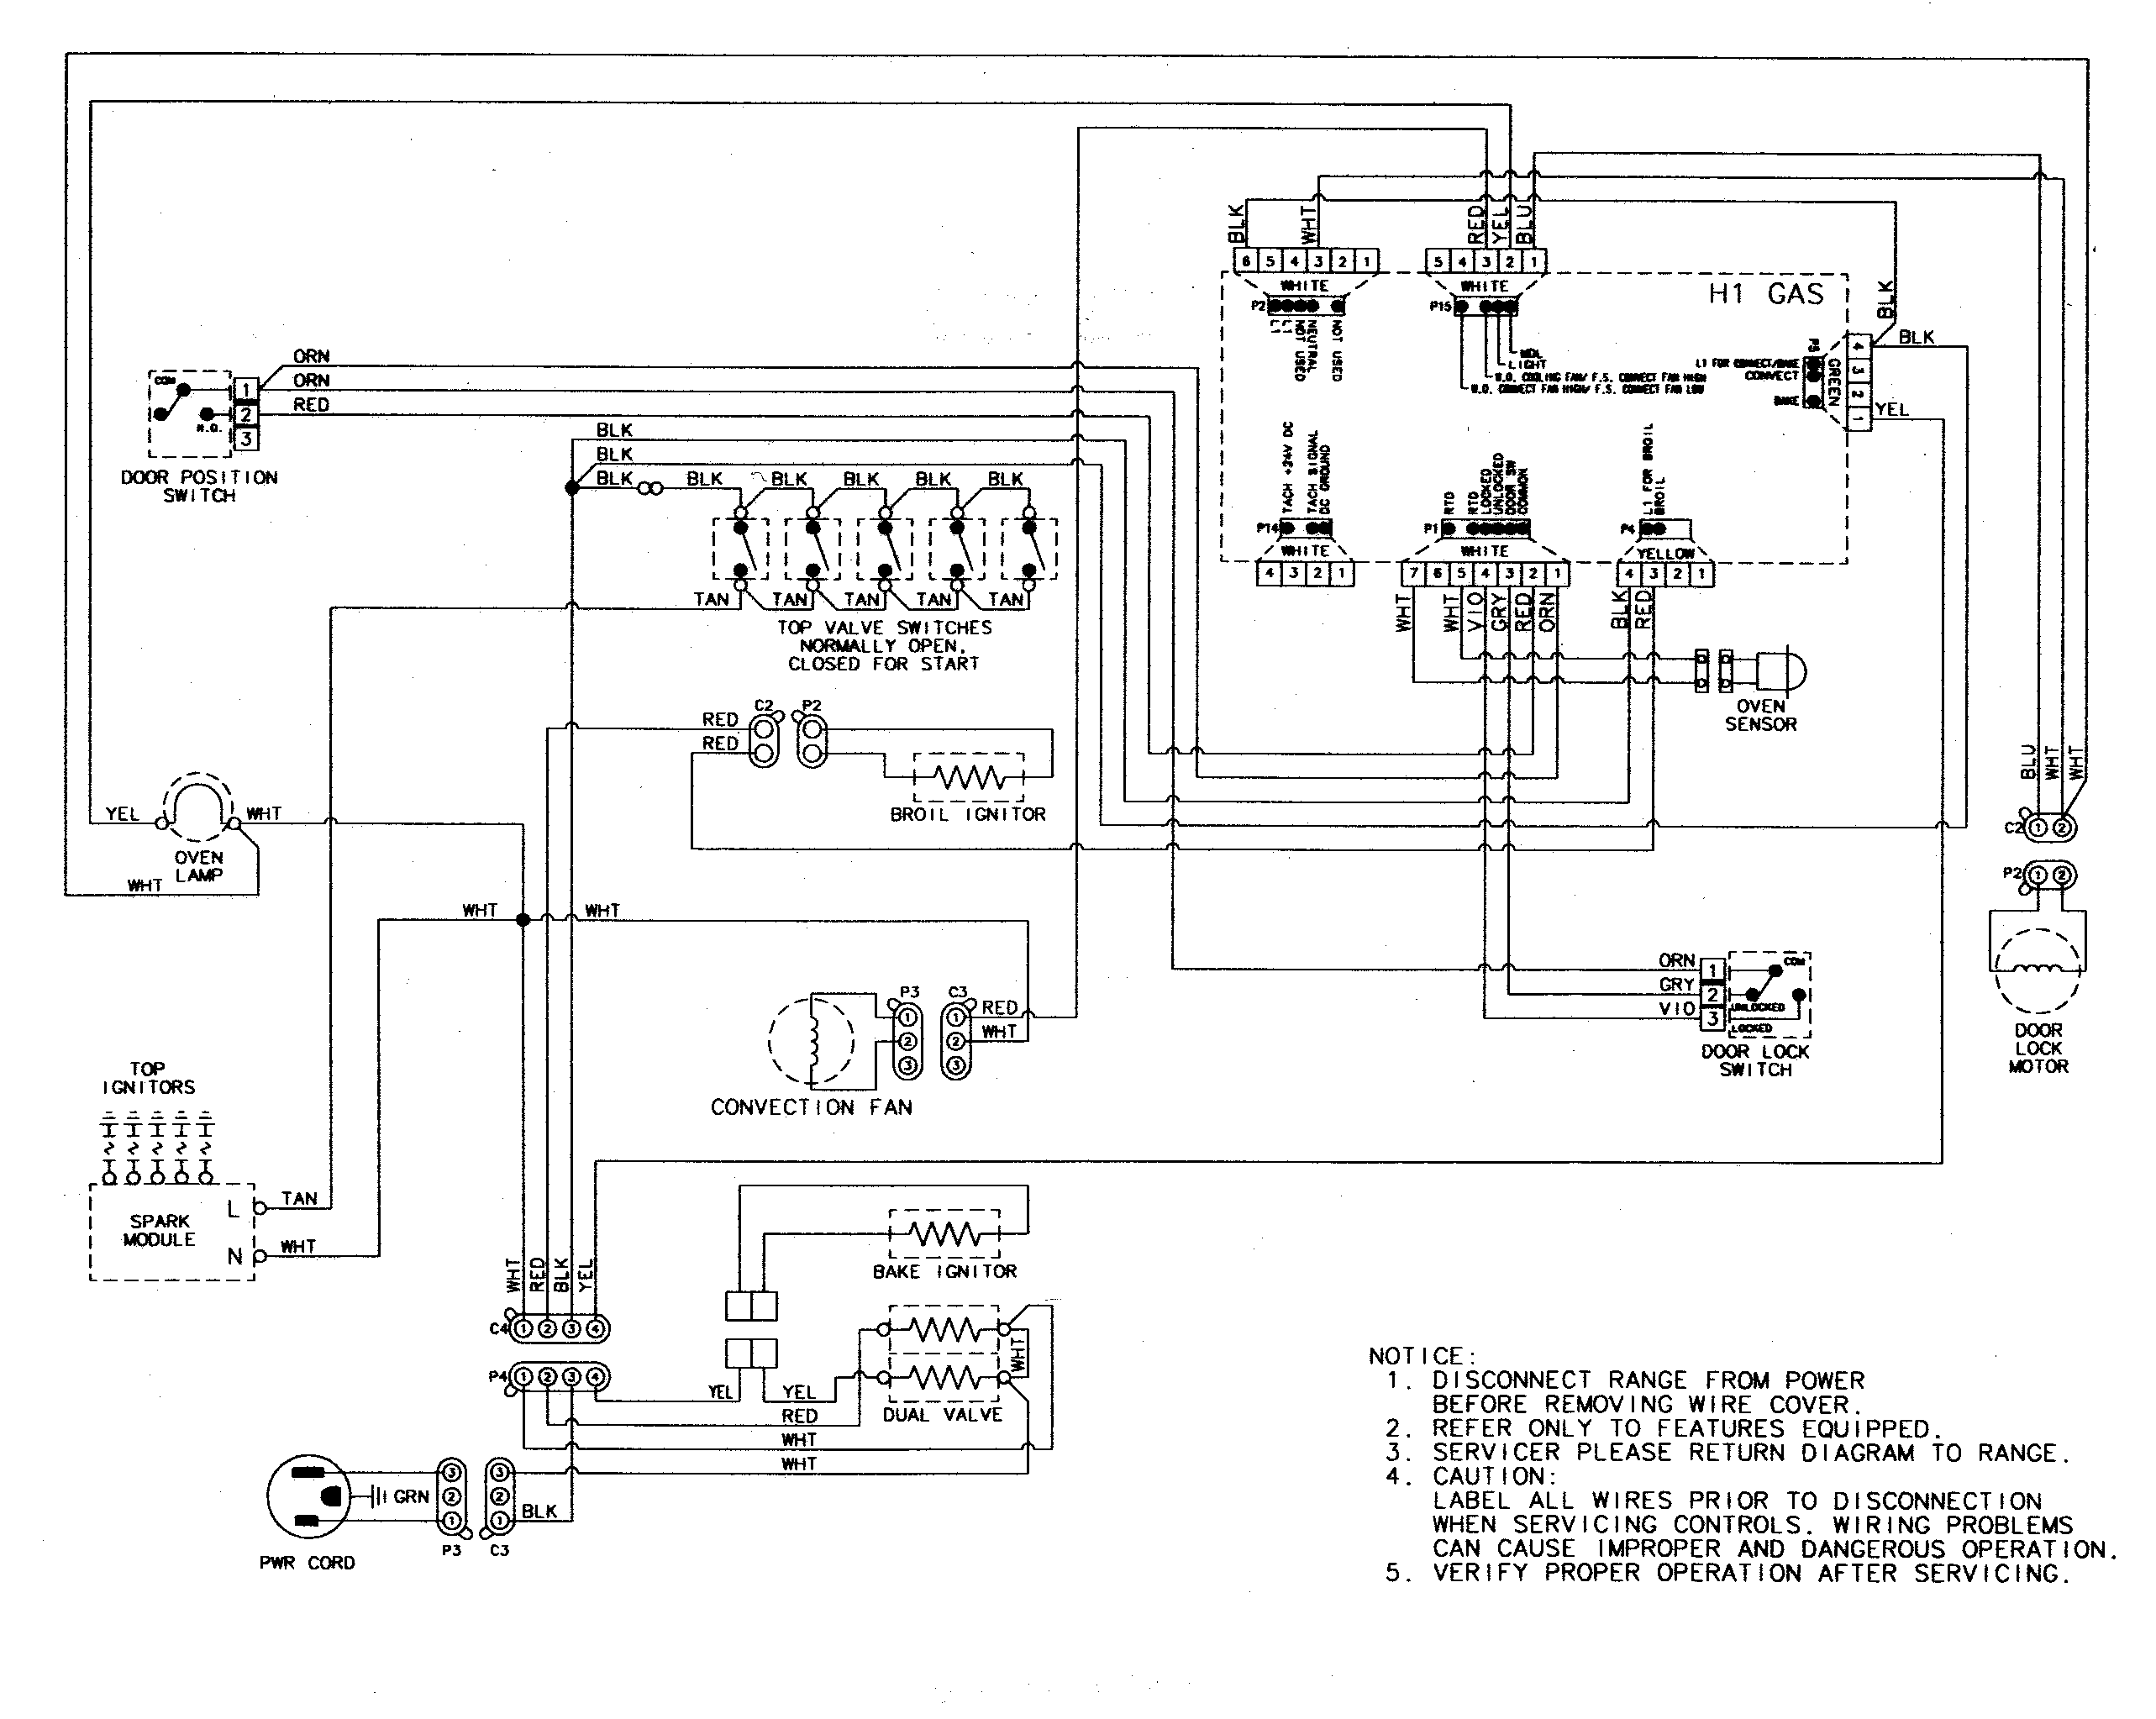 Gas Stove Wiring Diagram - Wiring Diagram Structure on magic chef double wall oven, magic chef microwave, magic chef gas stove, magic chef oven heating element, magic chef model numbers, magic chef refrigerator model mcbr1020w, furnace fan motor wiring diagram, magic chef heat pump, magic chef wall oven parts, magic chef serial numbers, magic chef gas wall oven,